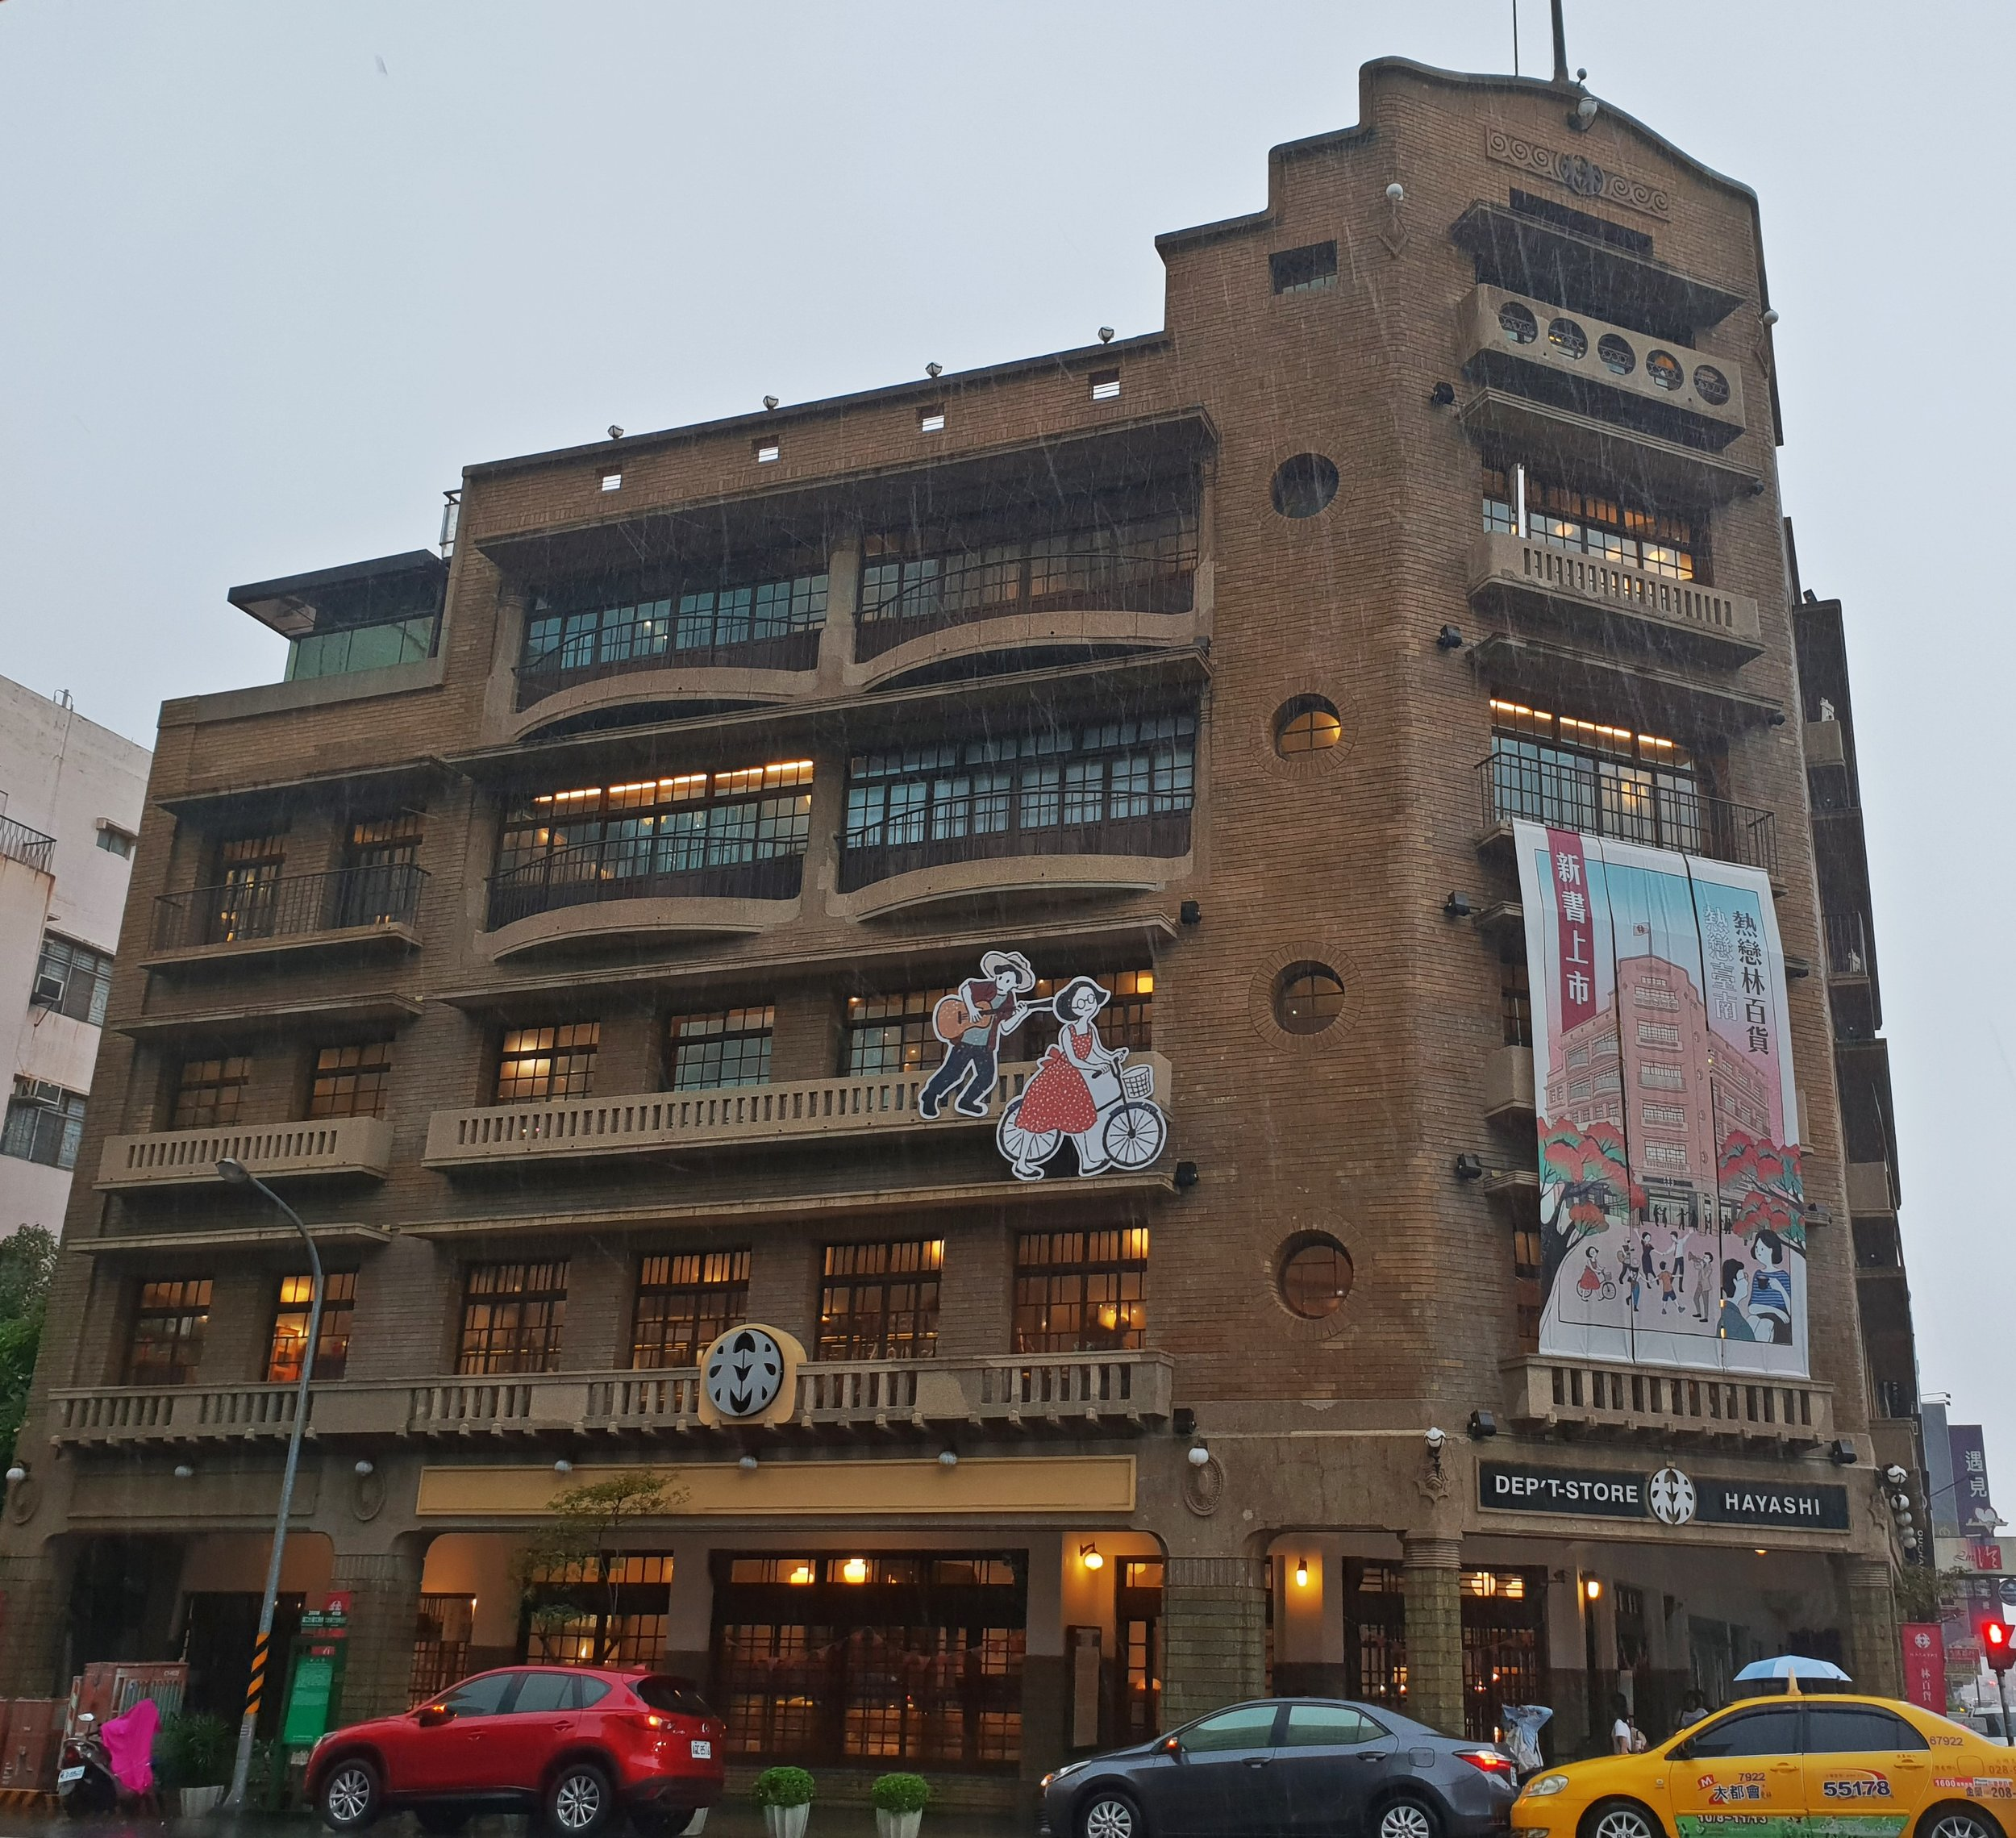 The famous Hayashi Department Store dates from the 1930's, a time when Tainan was on a building spree